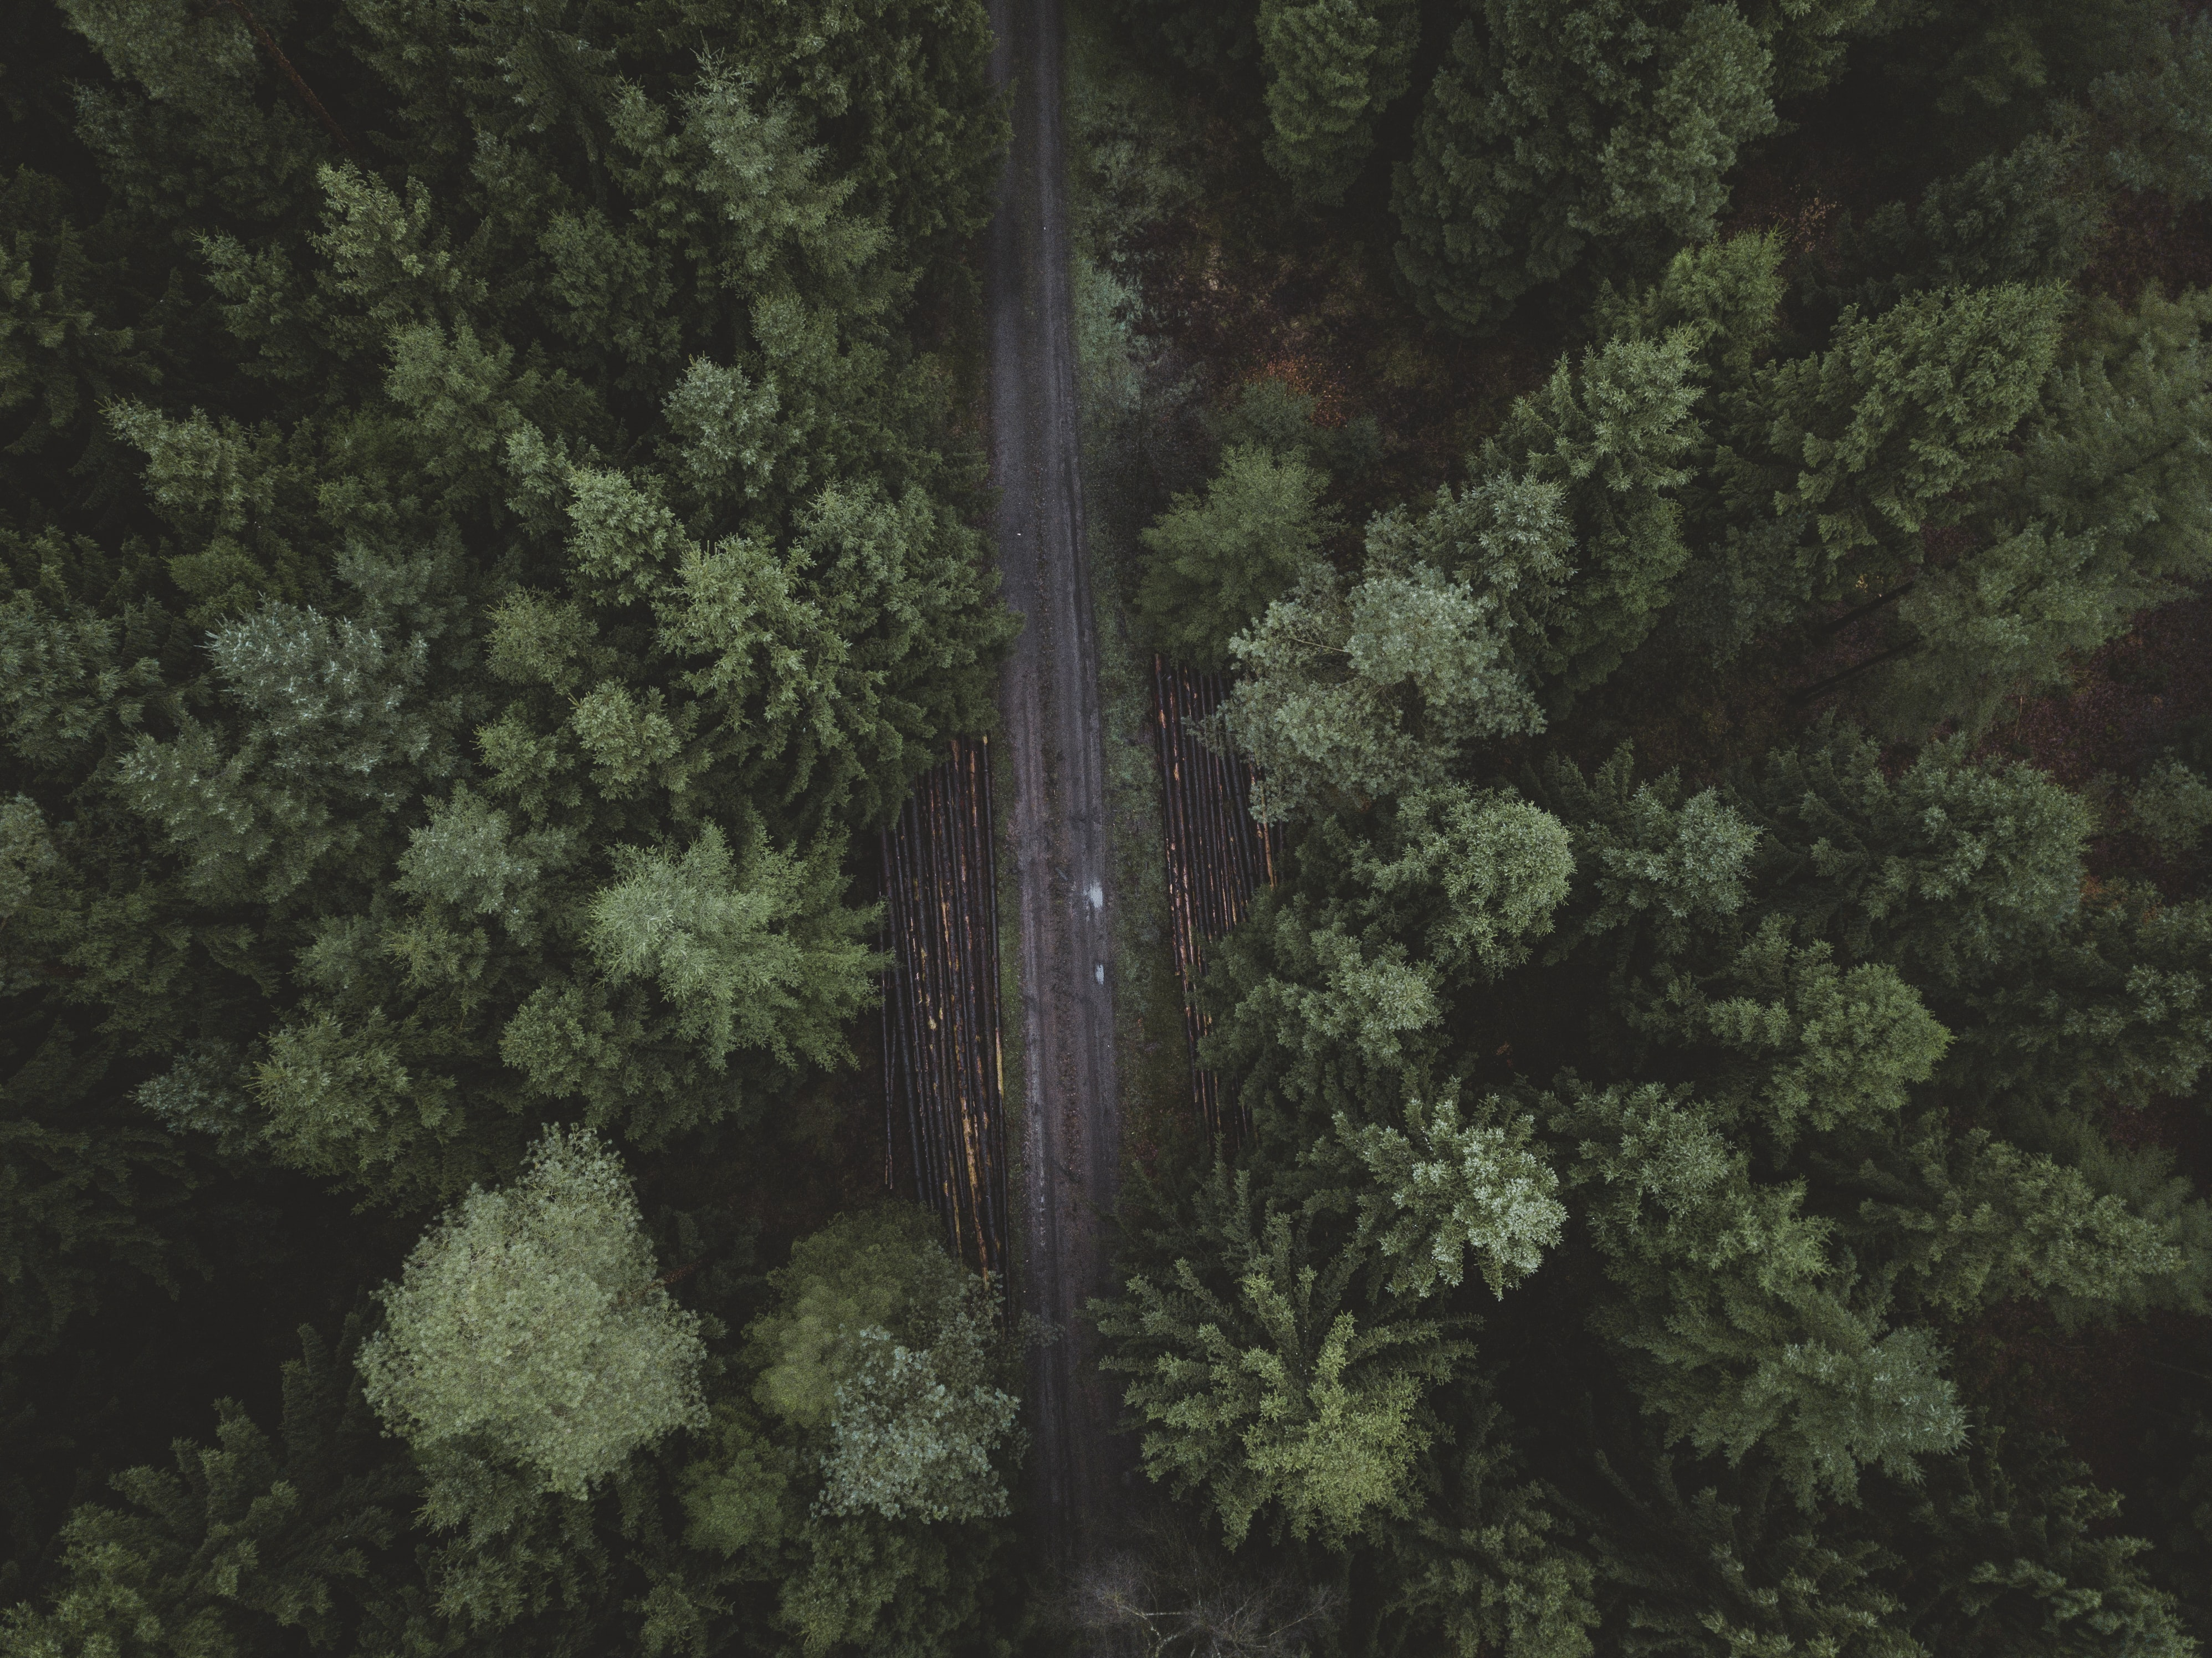 bird's-eye view photography of road surrounded with pine trees